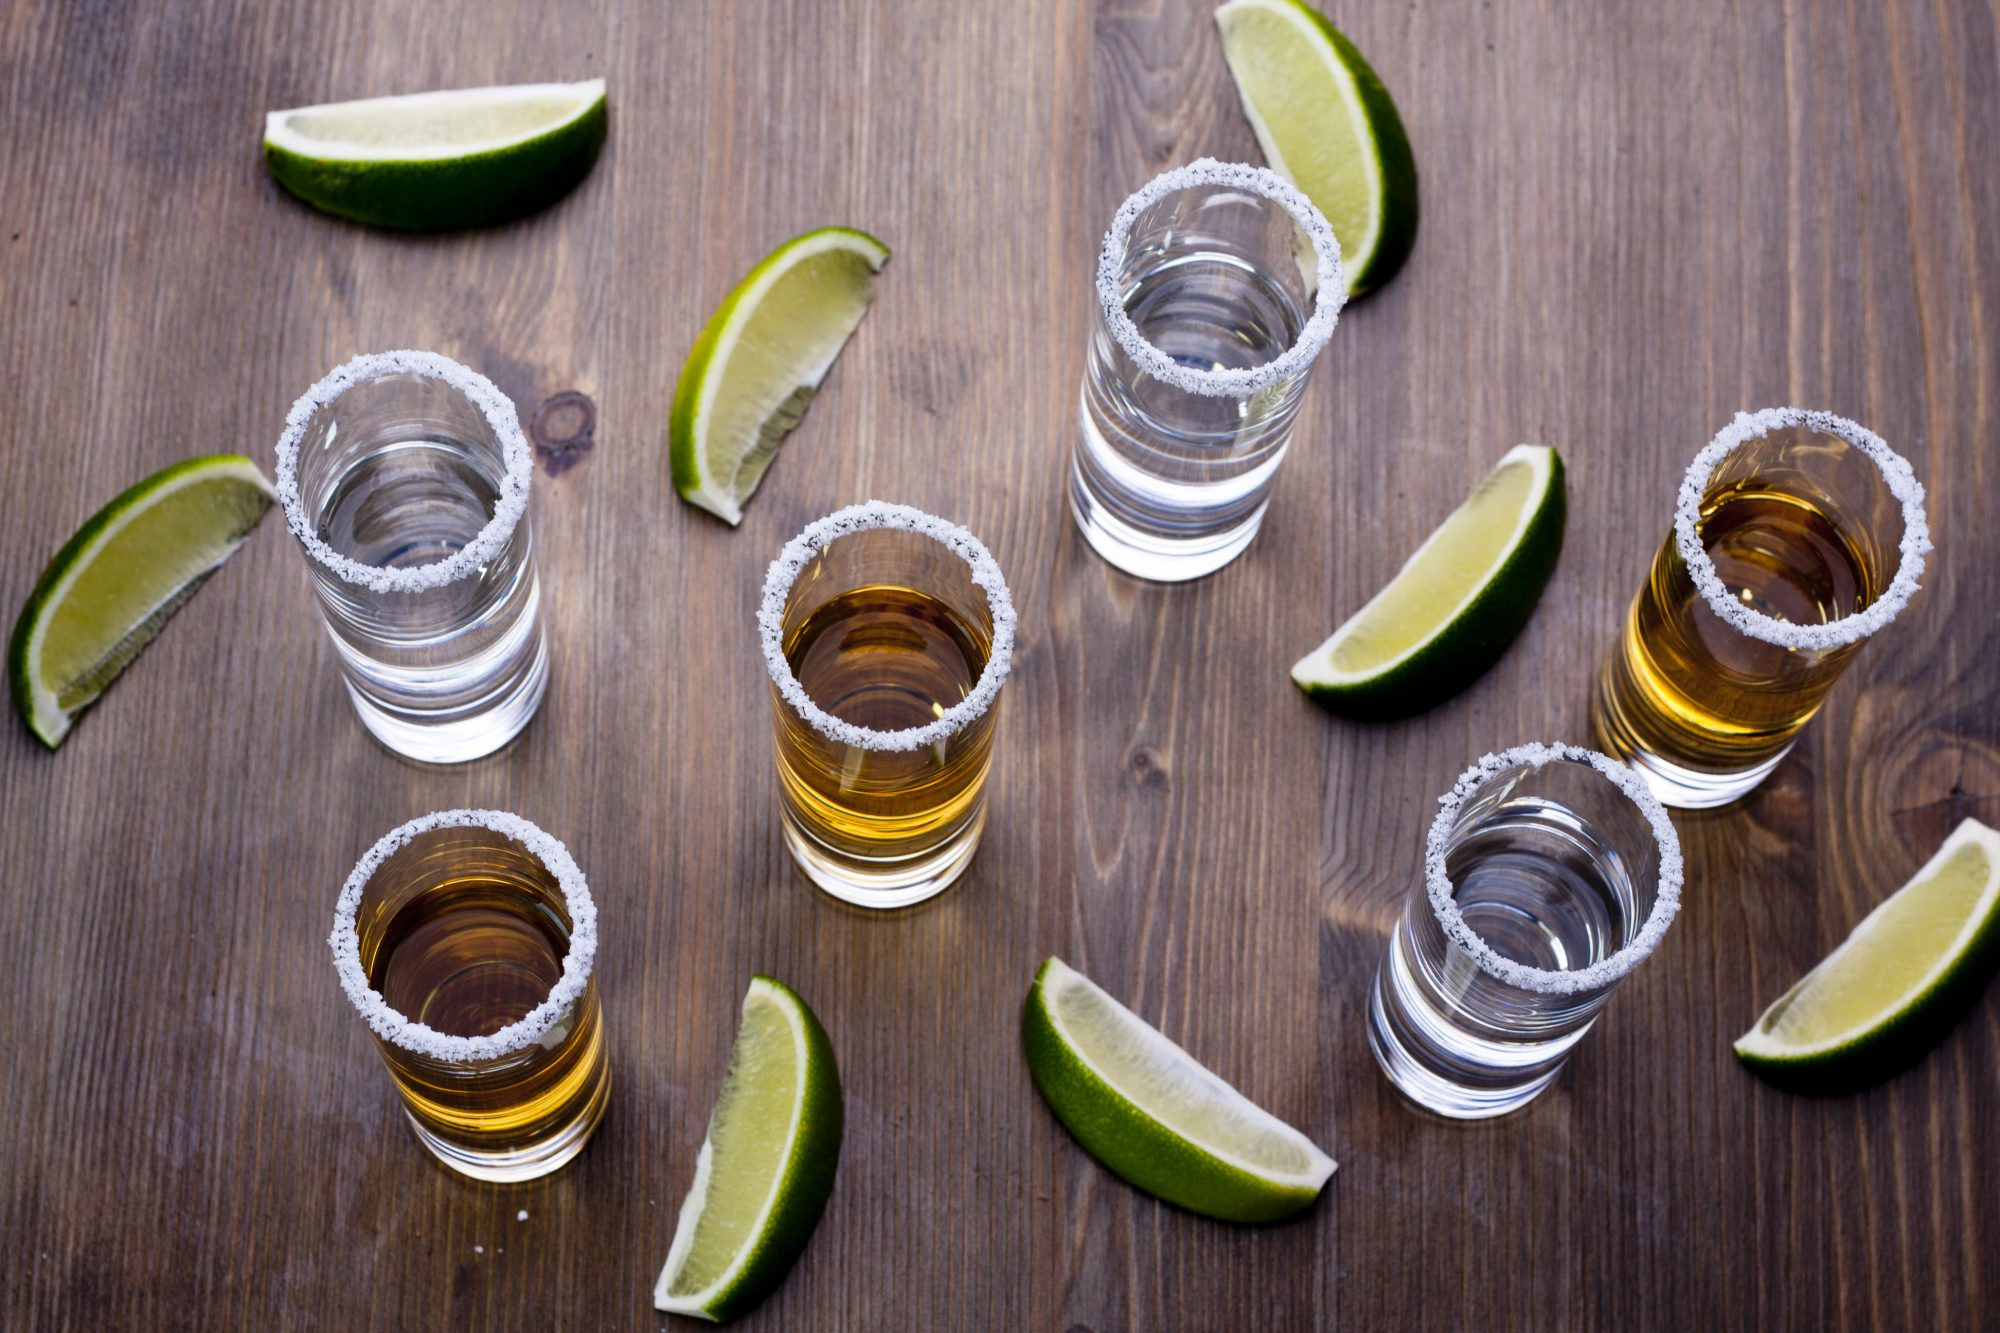 getty-tequila-shots-image